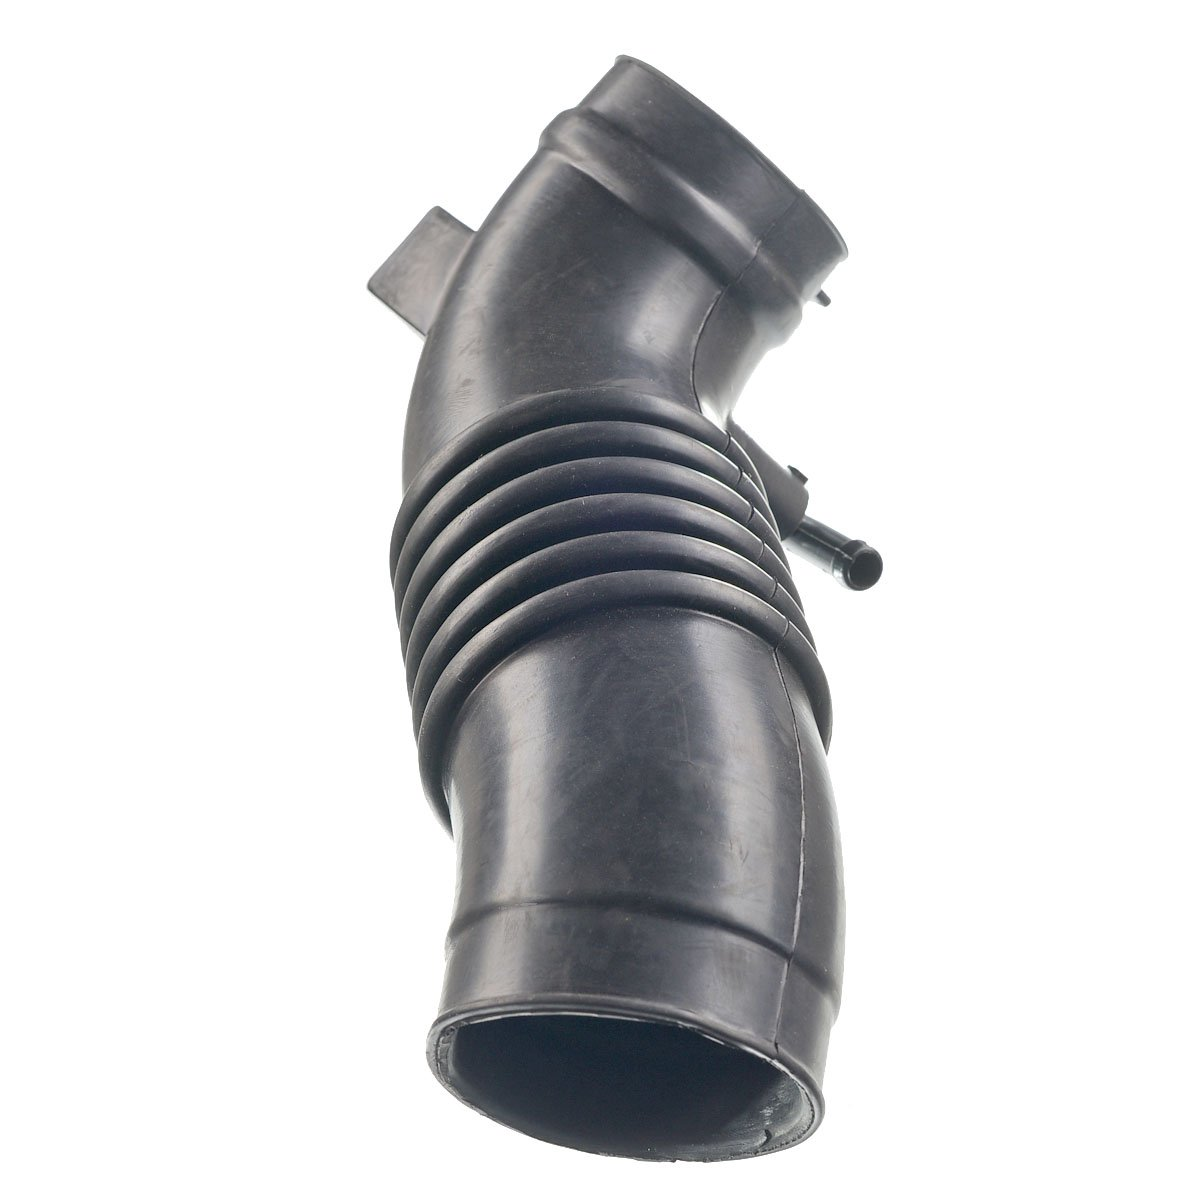 Air Cleaner Intake Hose Flow Tube for Mazda Protege 1999-2003 1.6L YTAUTOPARTS